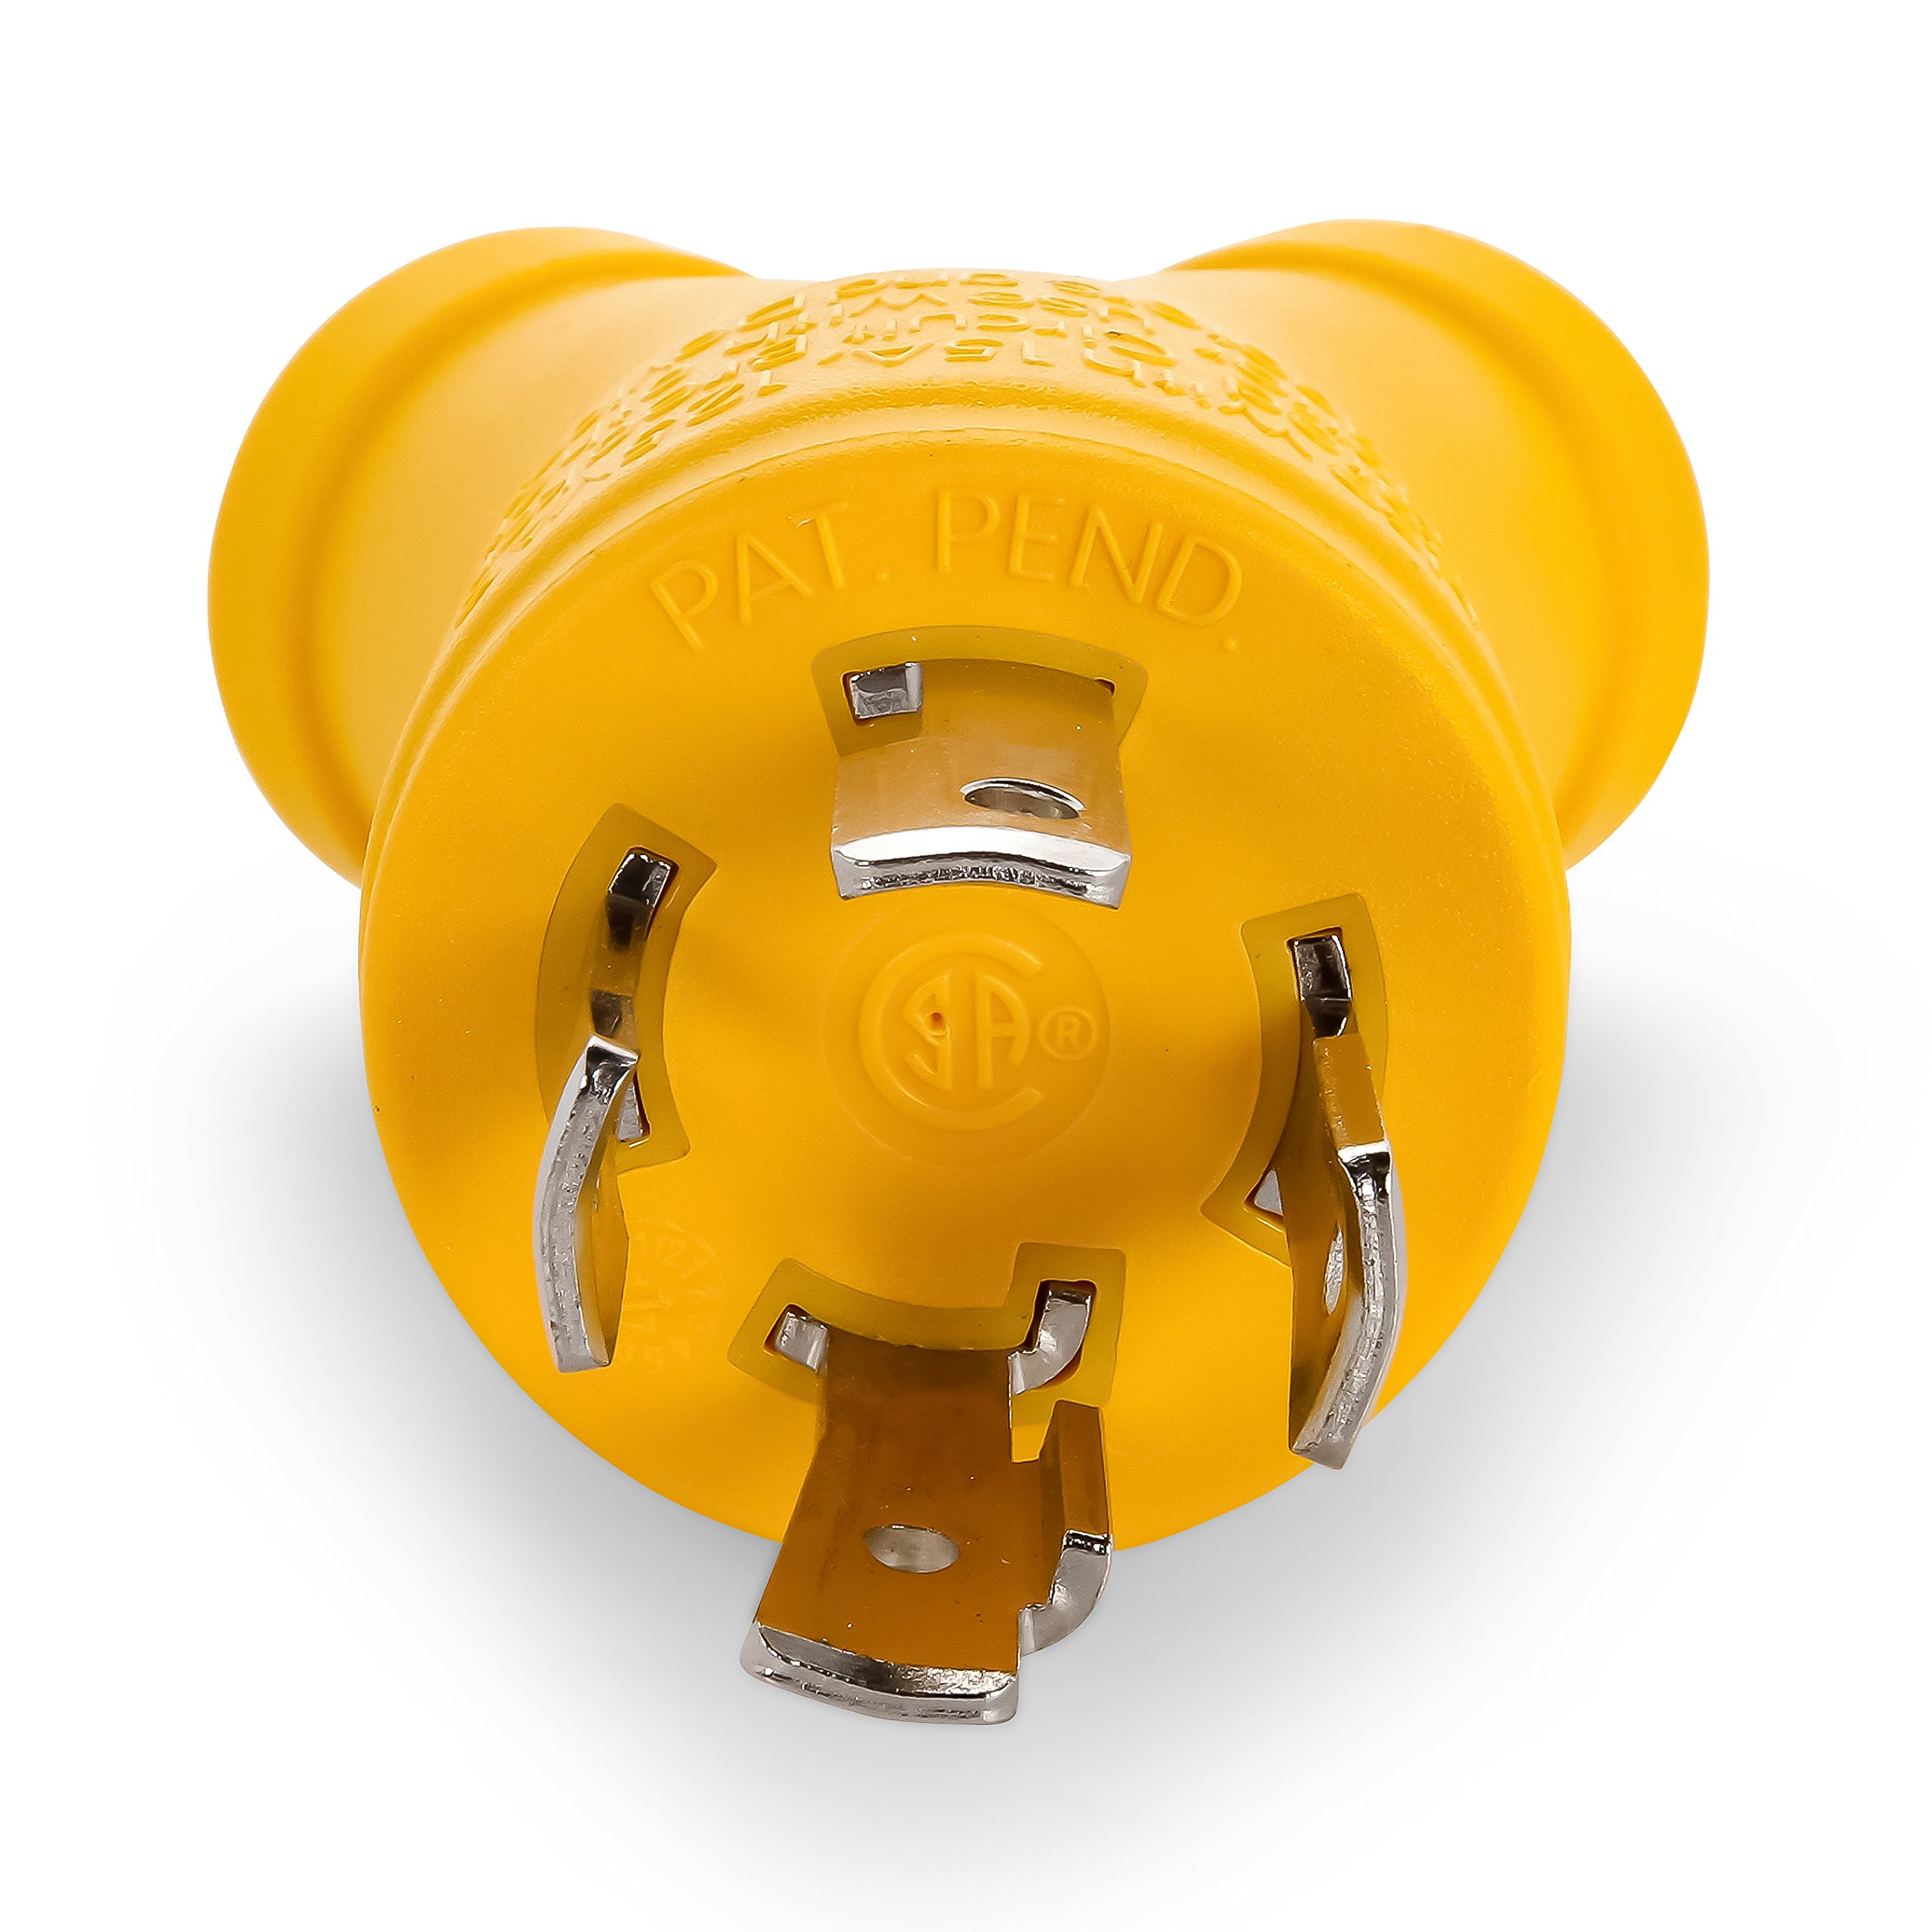 Camco Heavy Duty PowerGrip 4-Prong Generator Adapter - Allows You to Easily and Safely Distribute Power from 30 Amp Male Receptacle Into Two 15 Amp Female Receptacles (55438)